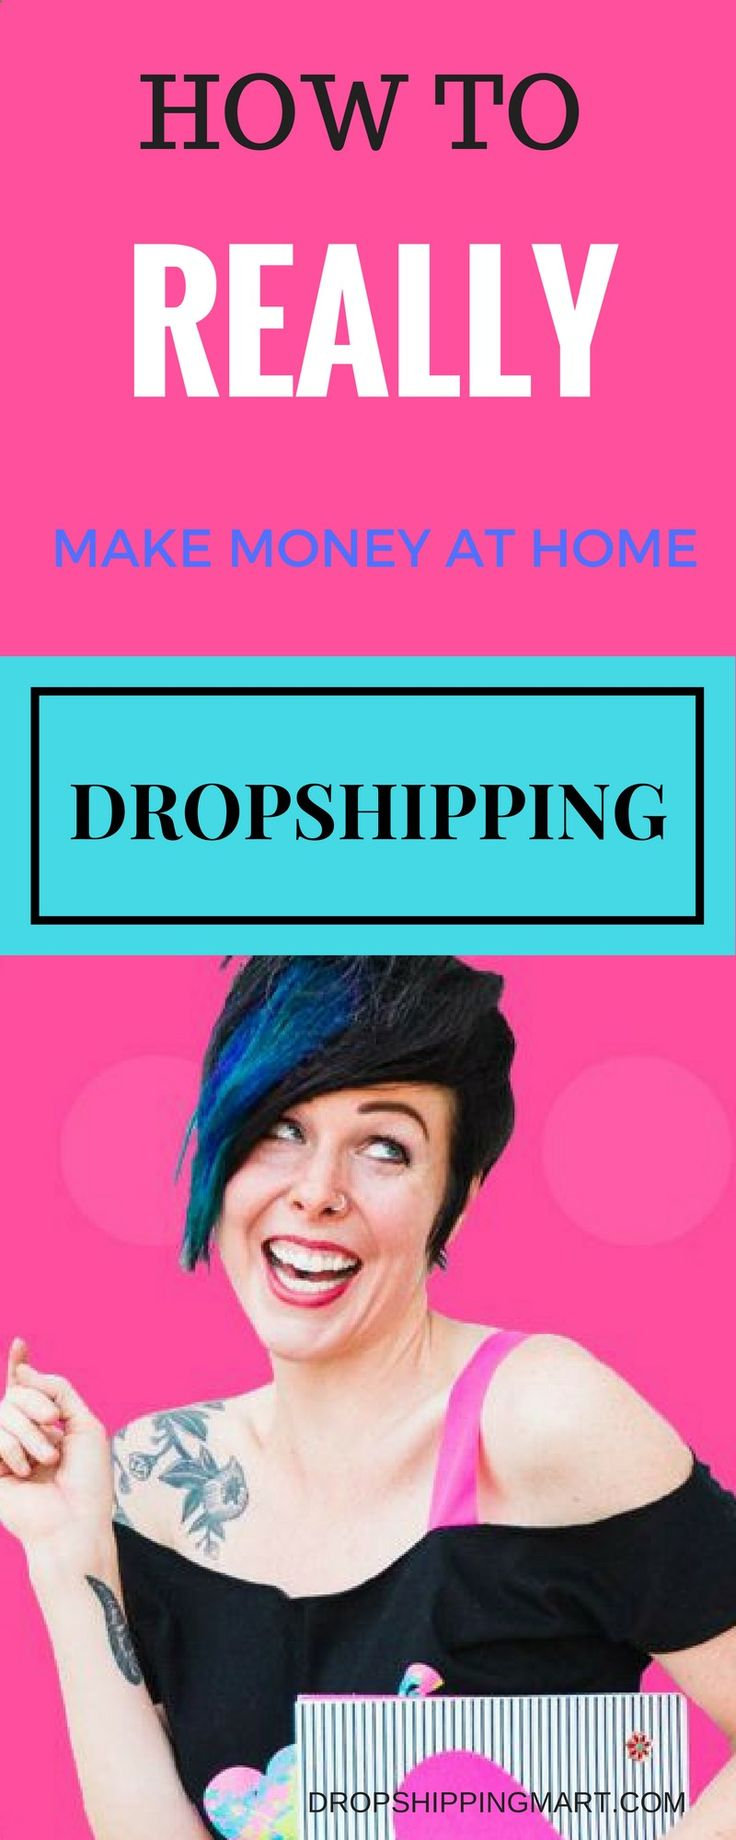 Earn Money Virtual Training - Copy Paste Earn Money - Copy Paste Earn Money - The dropshipping business is usually manufacturer, wholesaler, and shipper. When you join up with a dropshipping operation, you can order a number of products or, in some cases, only one. - You're copy pasting anyway...Get paid for it. - You're copy pasting anyway...Get paid for it. - Legendary Entrepreneurs Show You How to Start, Launch & Grow a Digital Business...16 Hours of Training from Industry Titans | ...